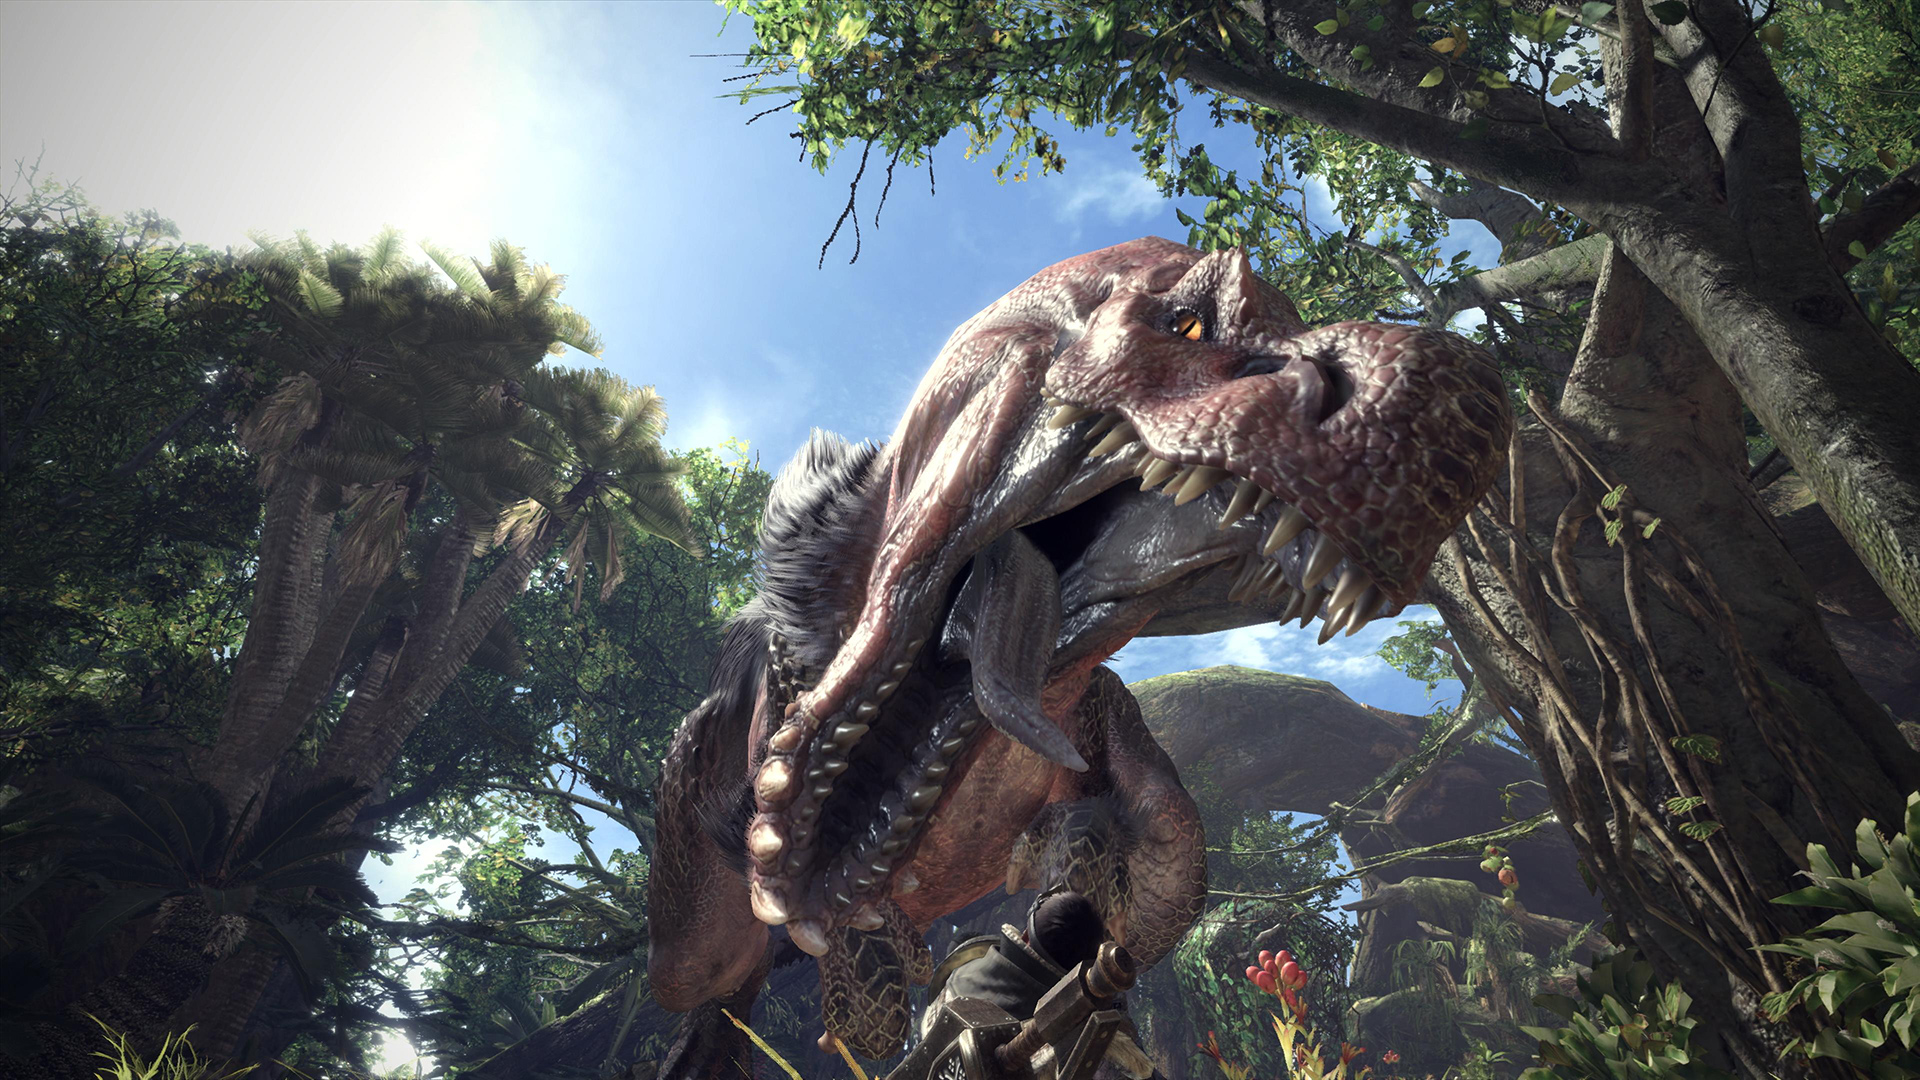 Monster Hunter: World - Anjanath